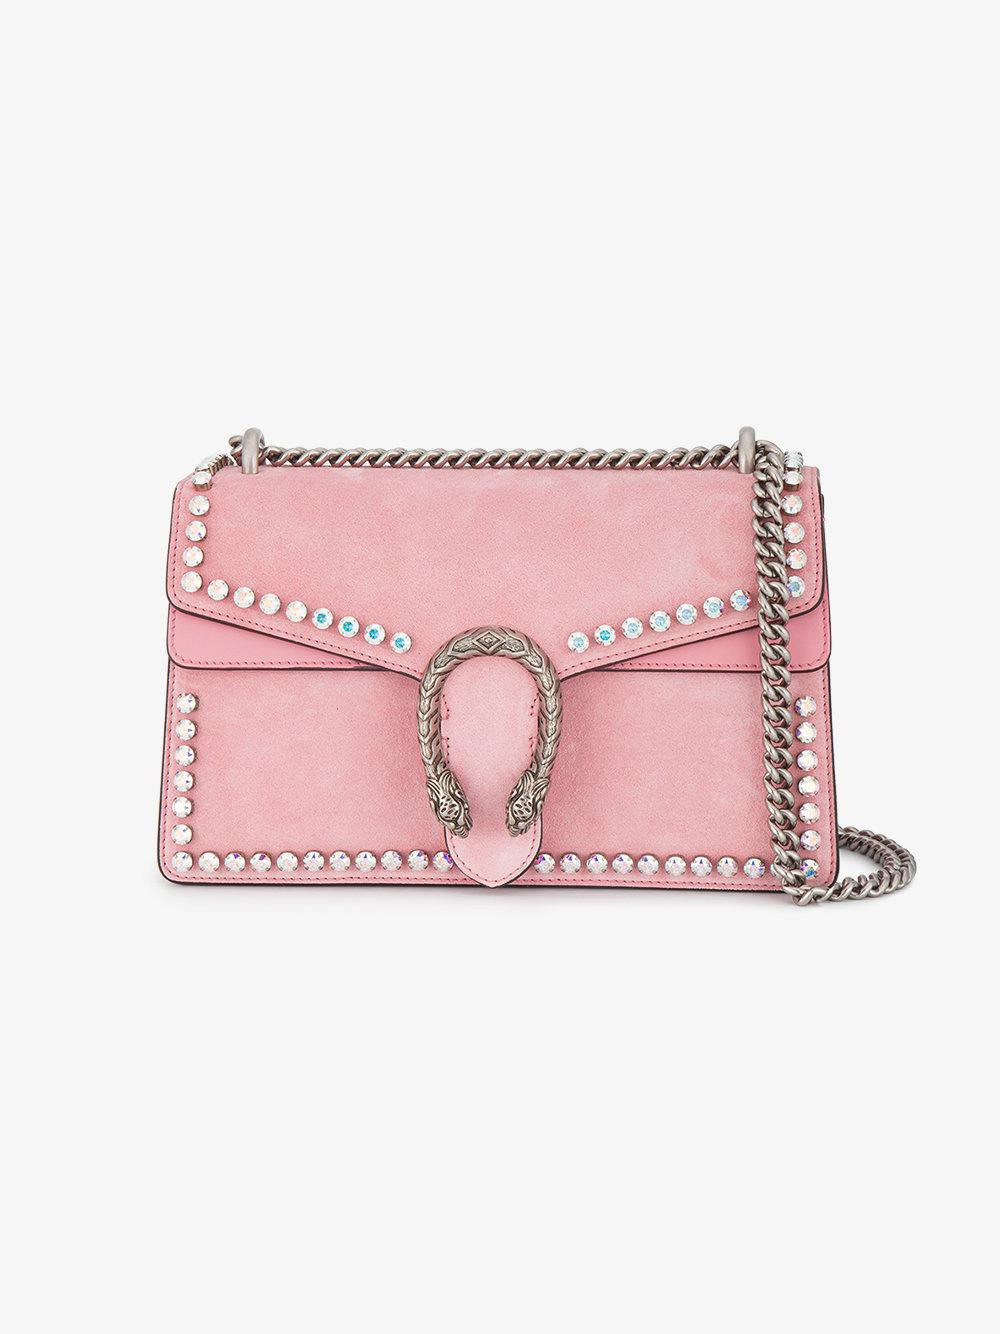 5f5e6573dd62 Lyst - Gucci Dionysus Suede Shoulder Bag With Crystals in Pink